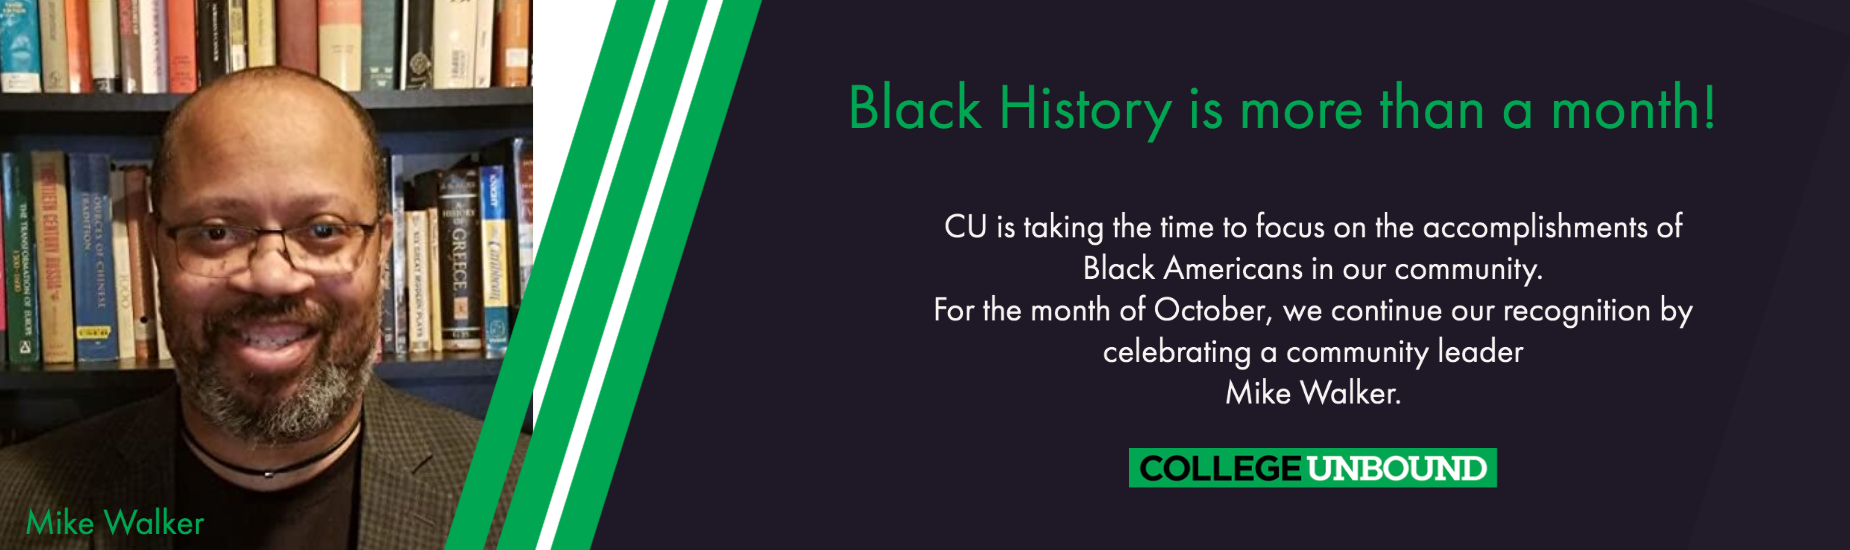 Black History is more than a month! | Mike Walker